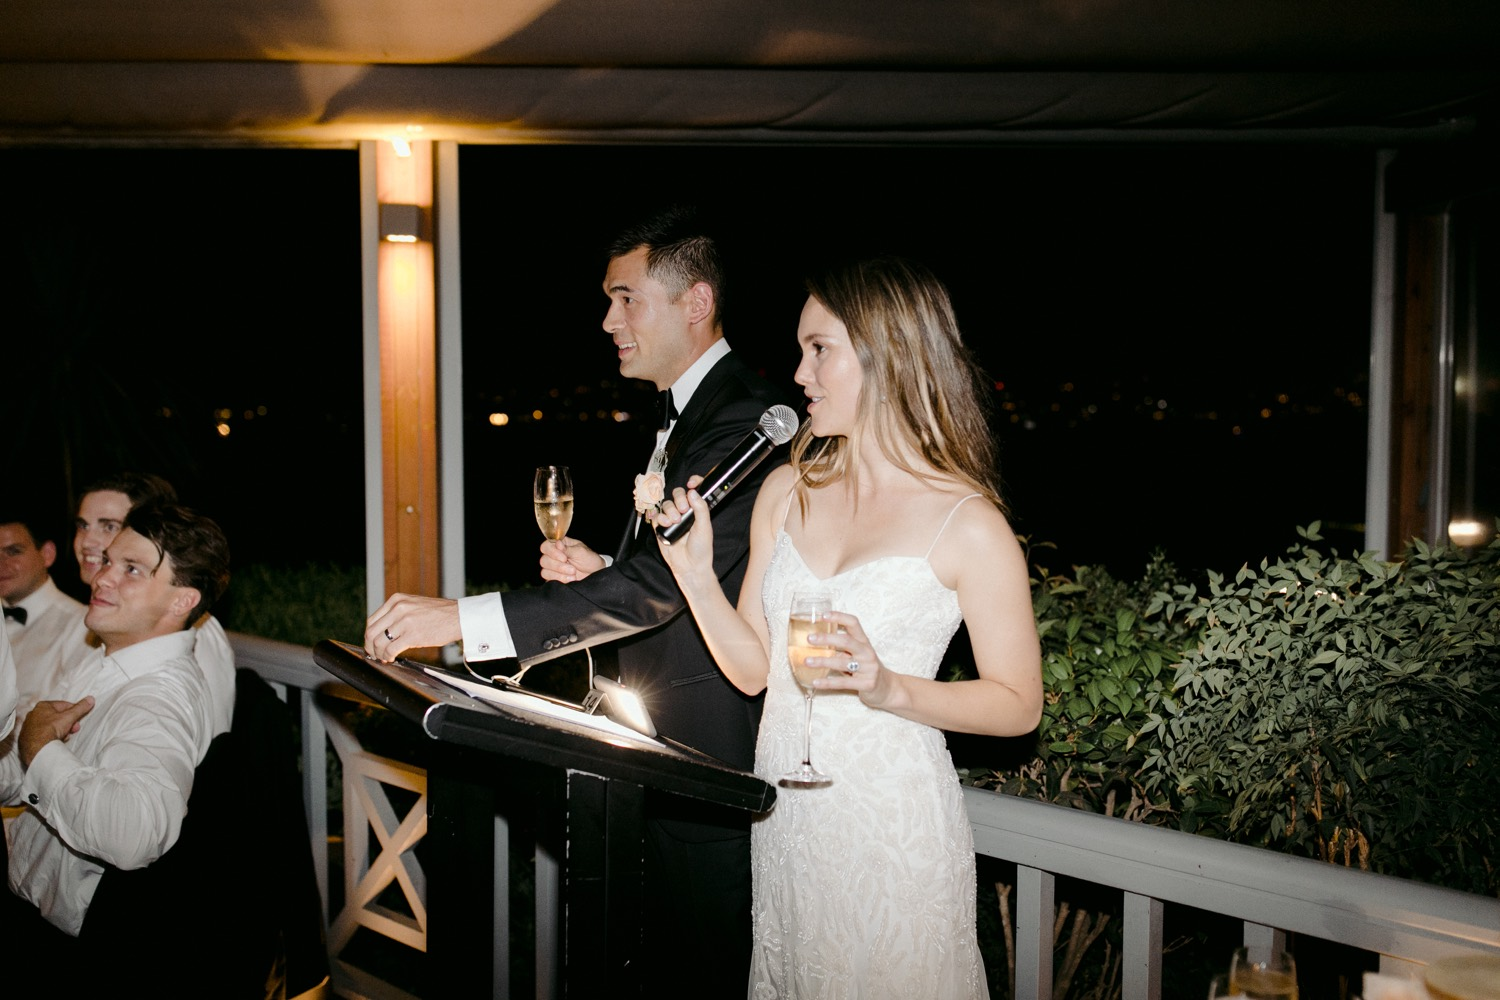 night time speeches at weddings